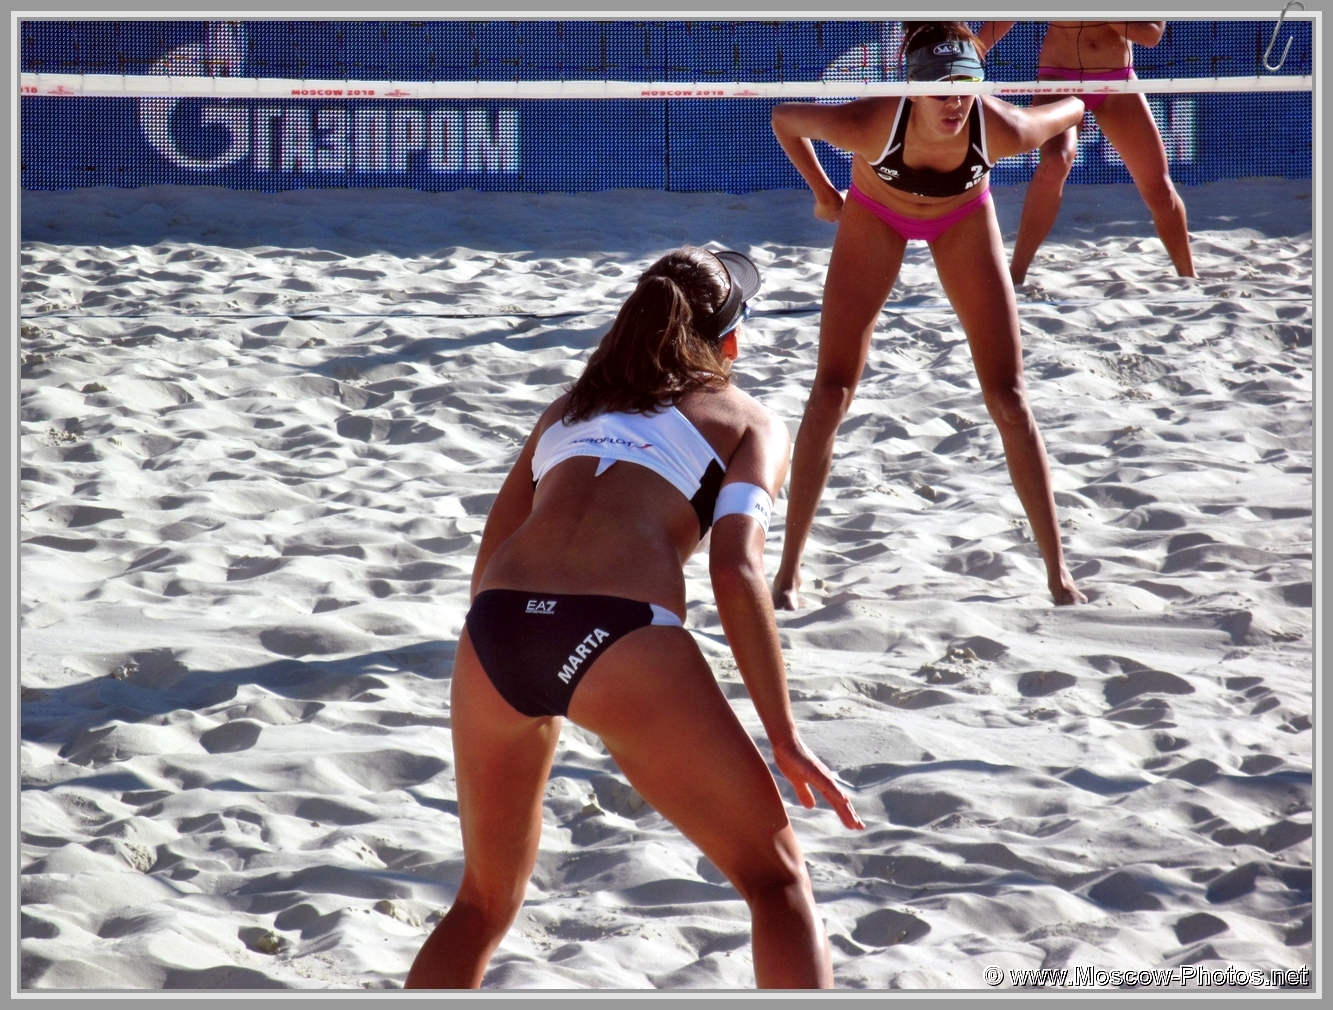 Marta Menegatti at FIVB Beach Volleyball World Tour in Moscow 2018